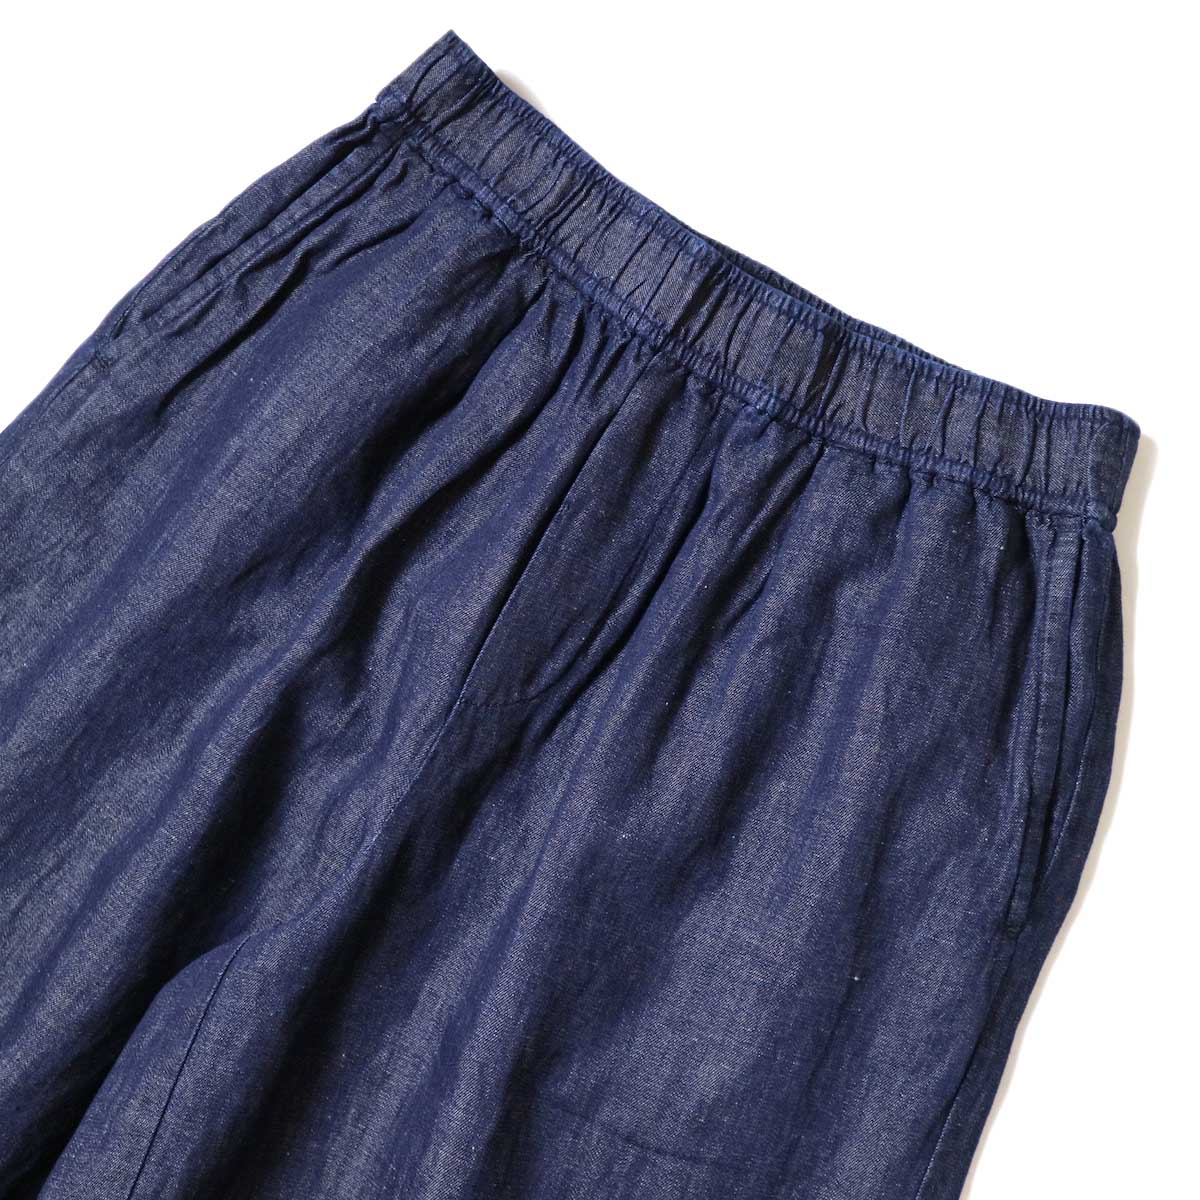 maison de soil / COTTON LINEN EASY WIDE PANTS (Navy) ウエスト